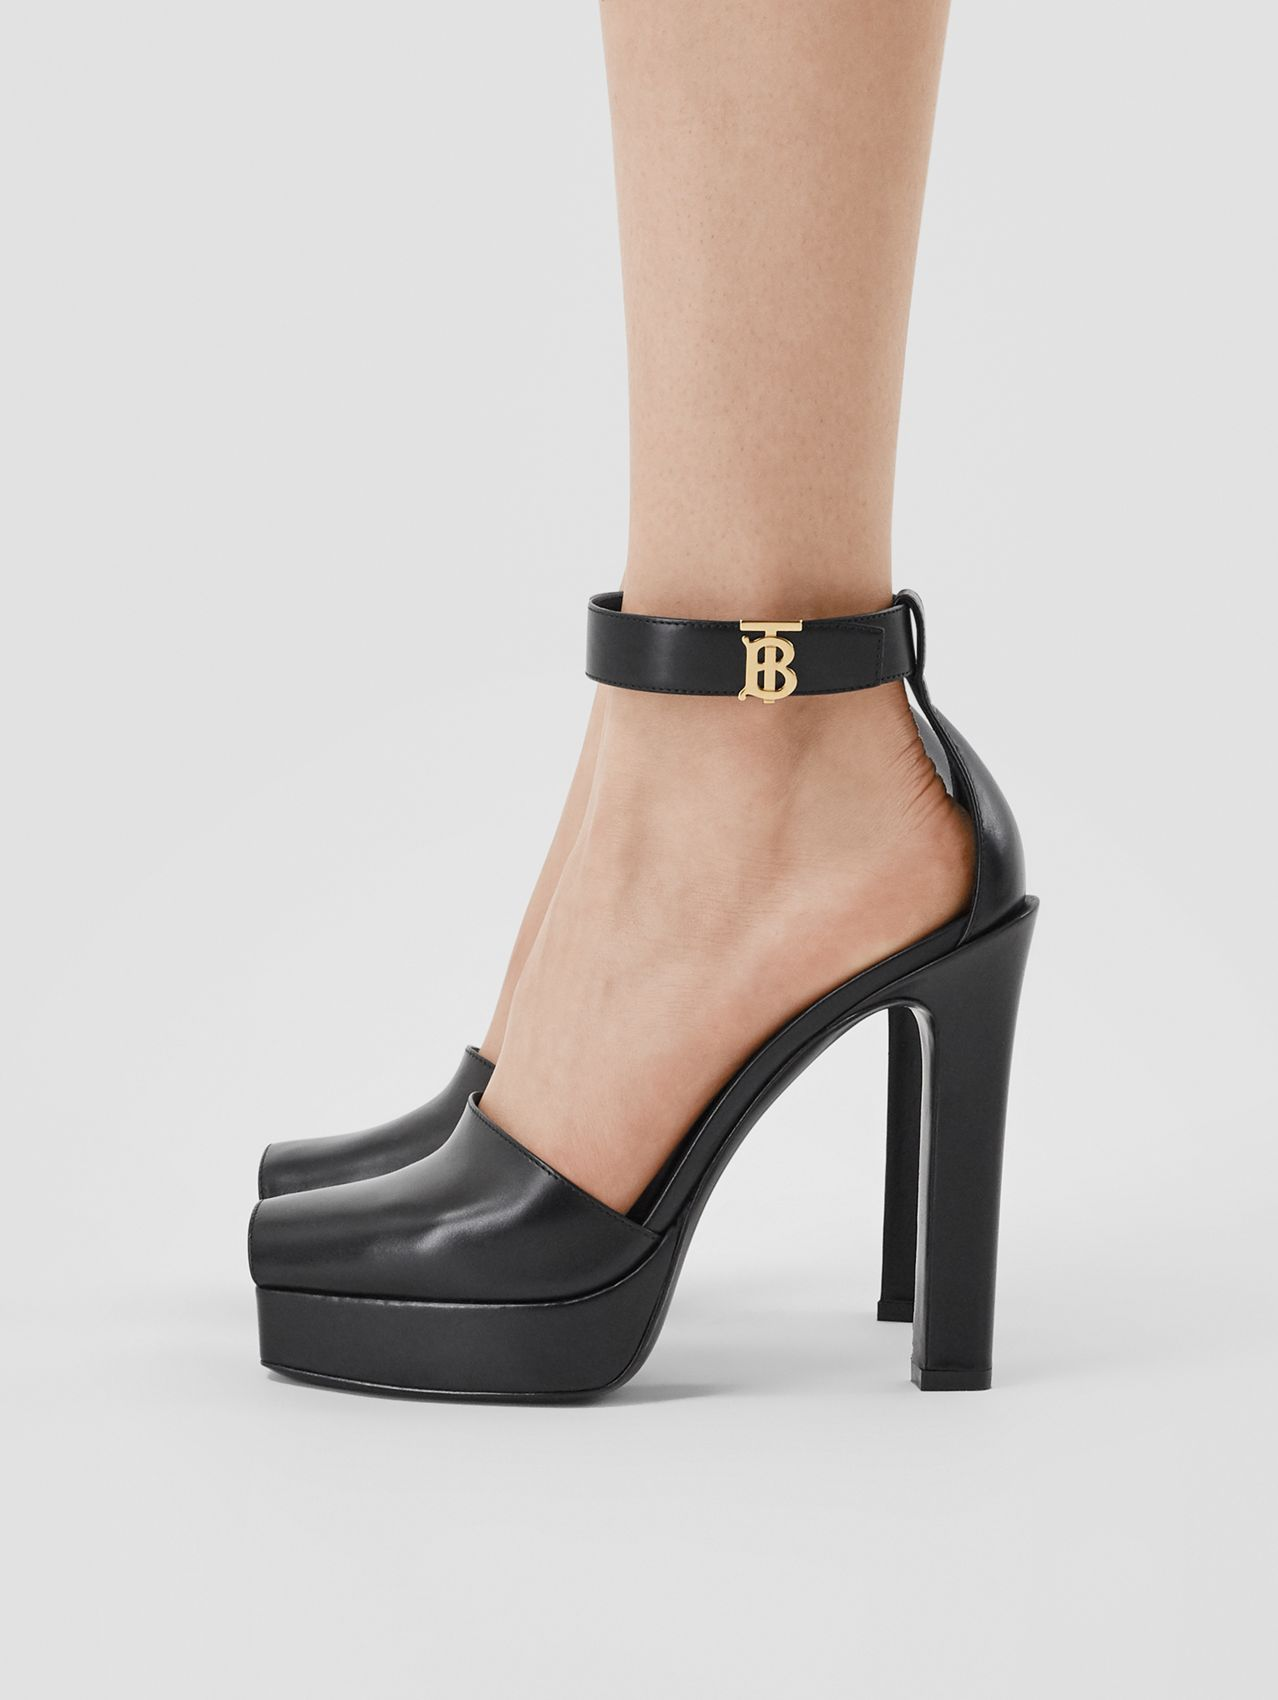 Monogram Motif Leather Peep-toe Sandals in Black